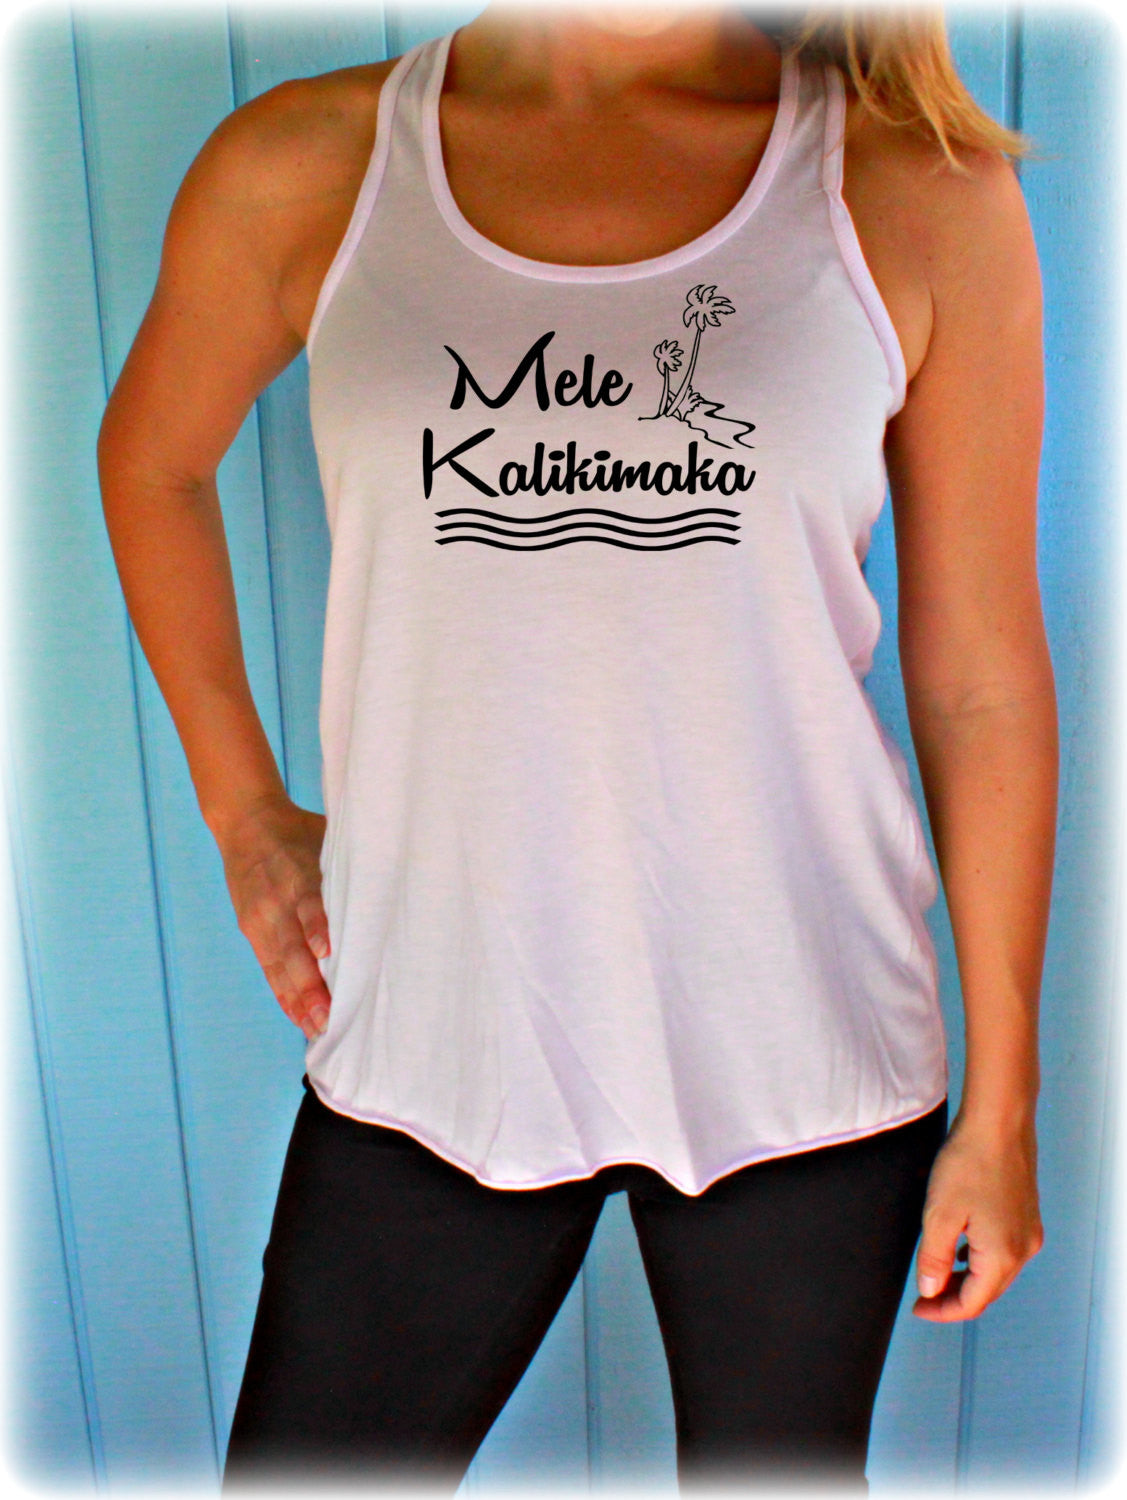 Christmas Shirt. Flowy Tank Top. Mele Kalikimaka. Beach Design. Womens Clothing. Christmas Gift. Holiday Shirt.